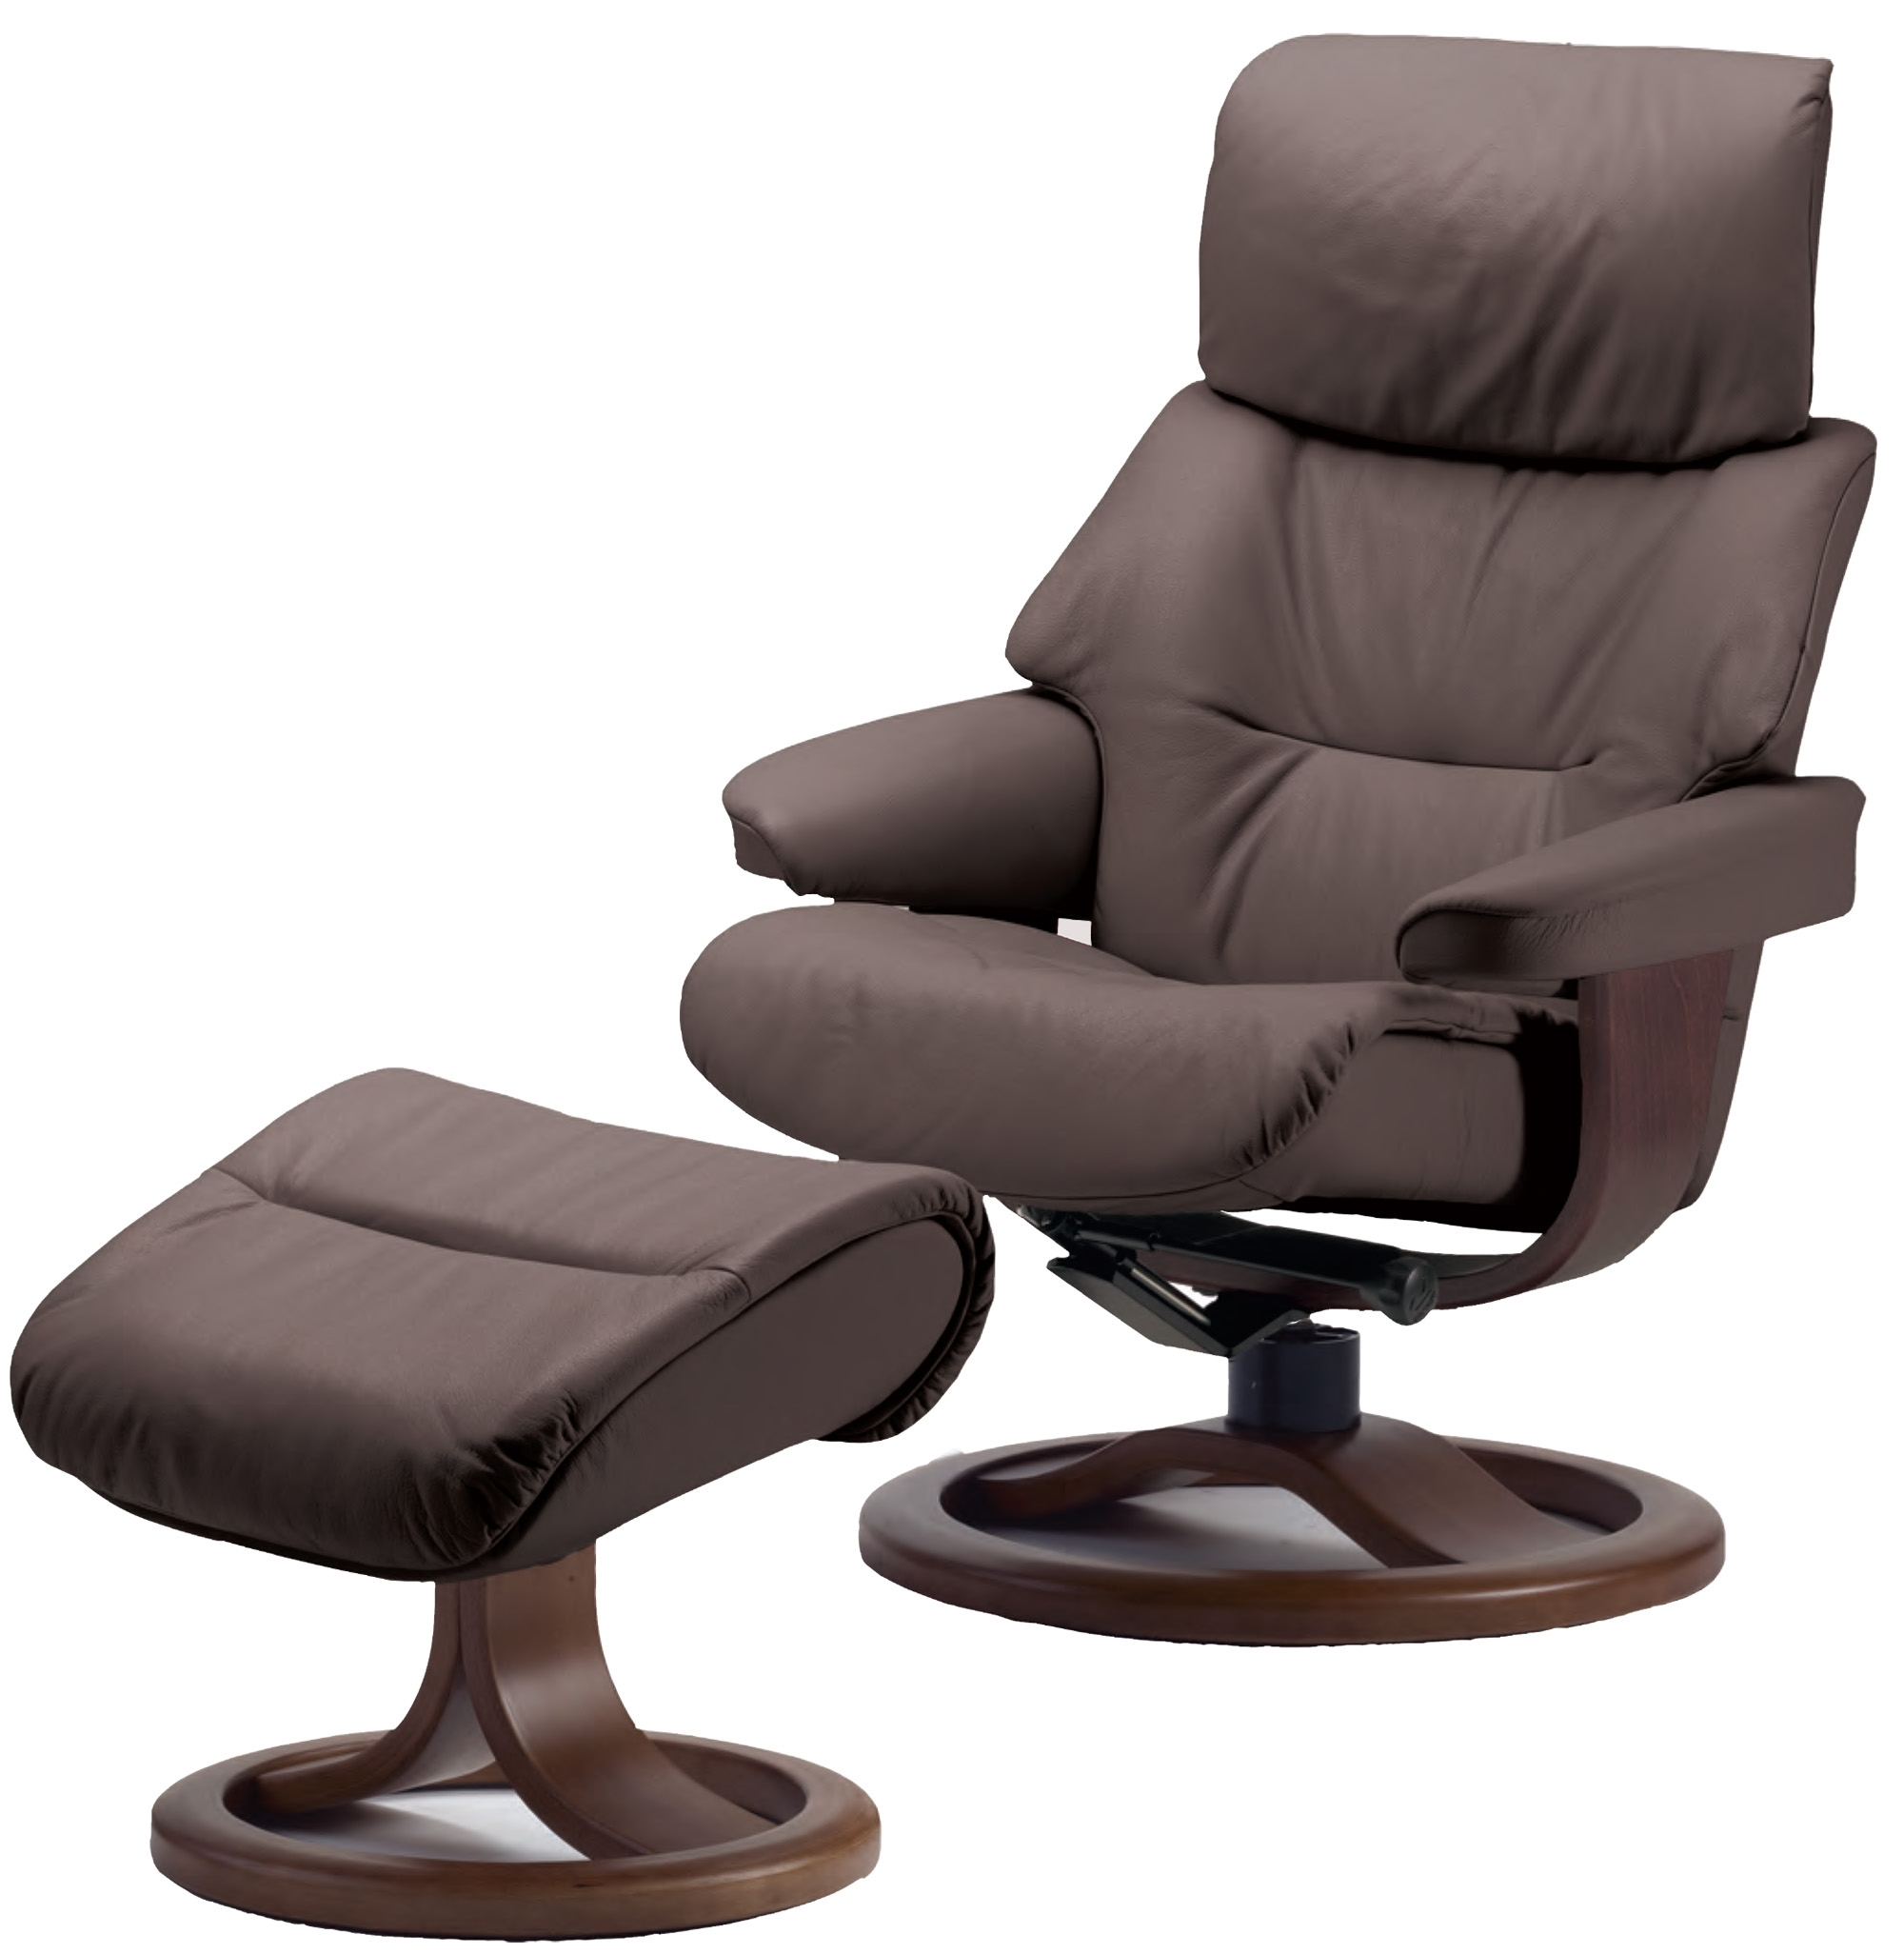 Lounge Chair : Chaise Lounge Chair Best Ergonomic Recliner Chairs With Fashionable Chaise Lounge Computer Chairs (View 10 of 15)